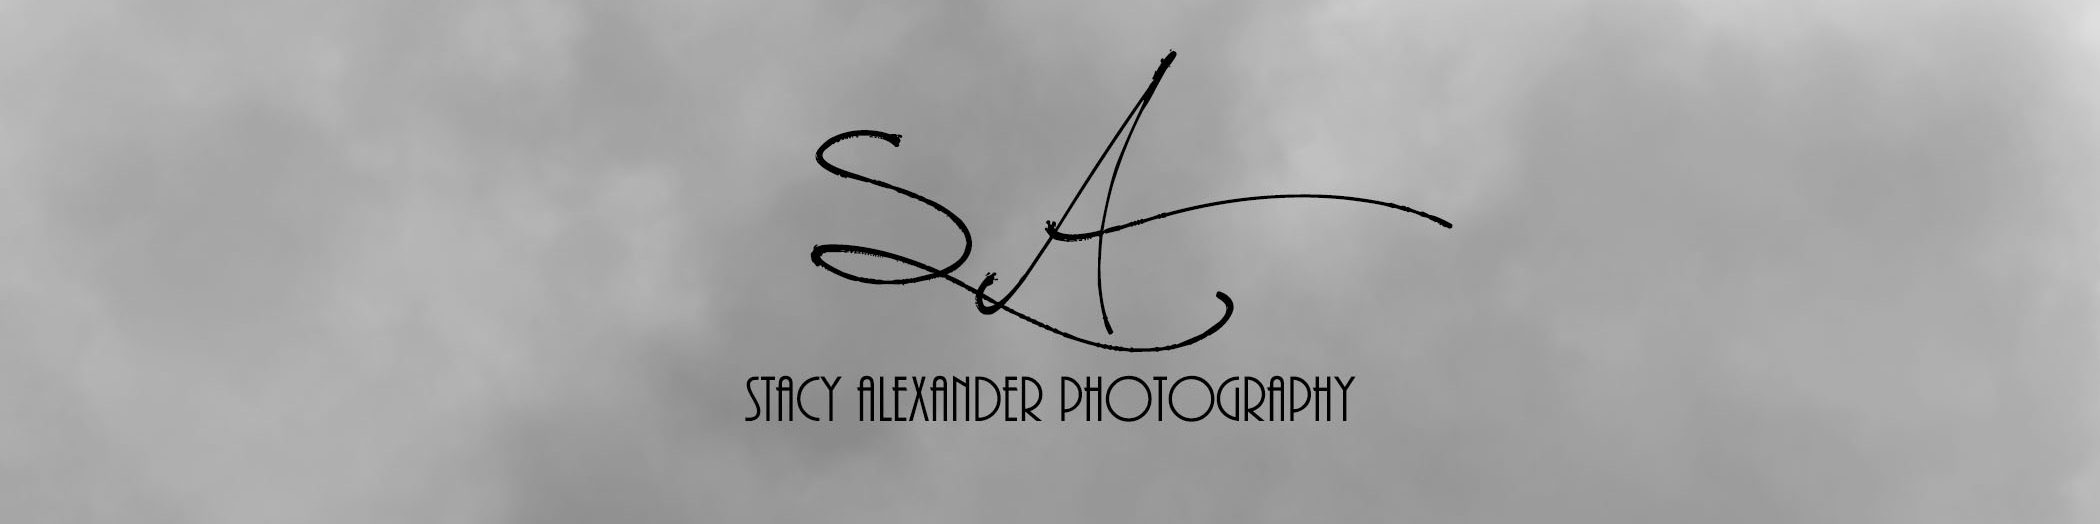 Stacy Alexander Photography